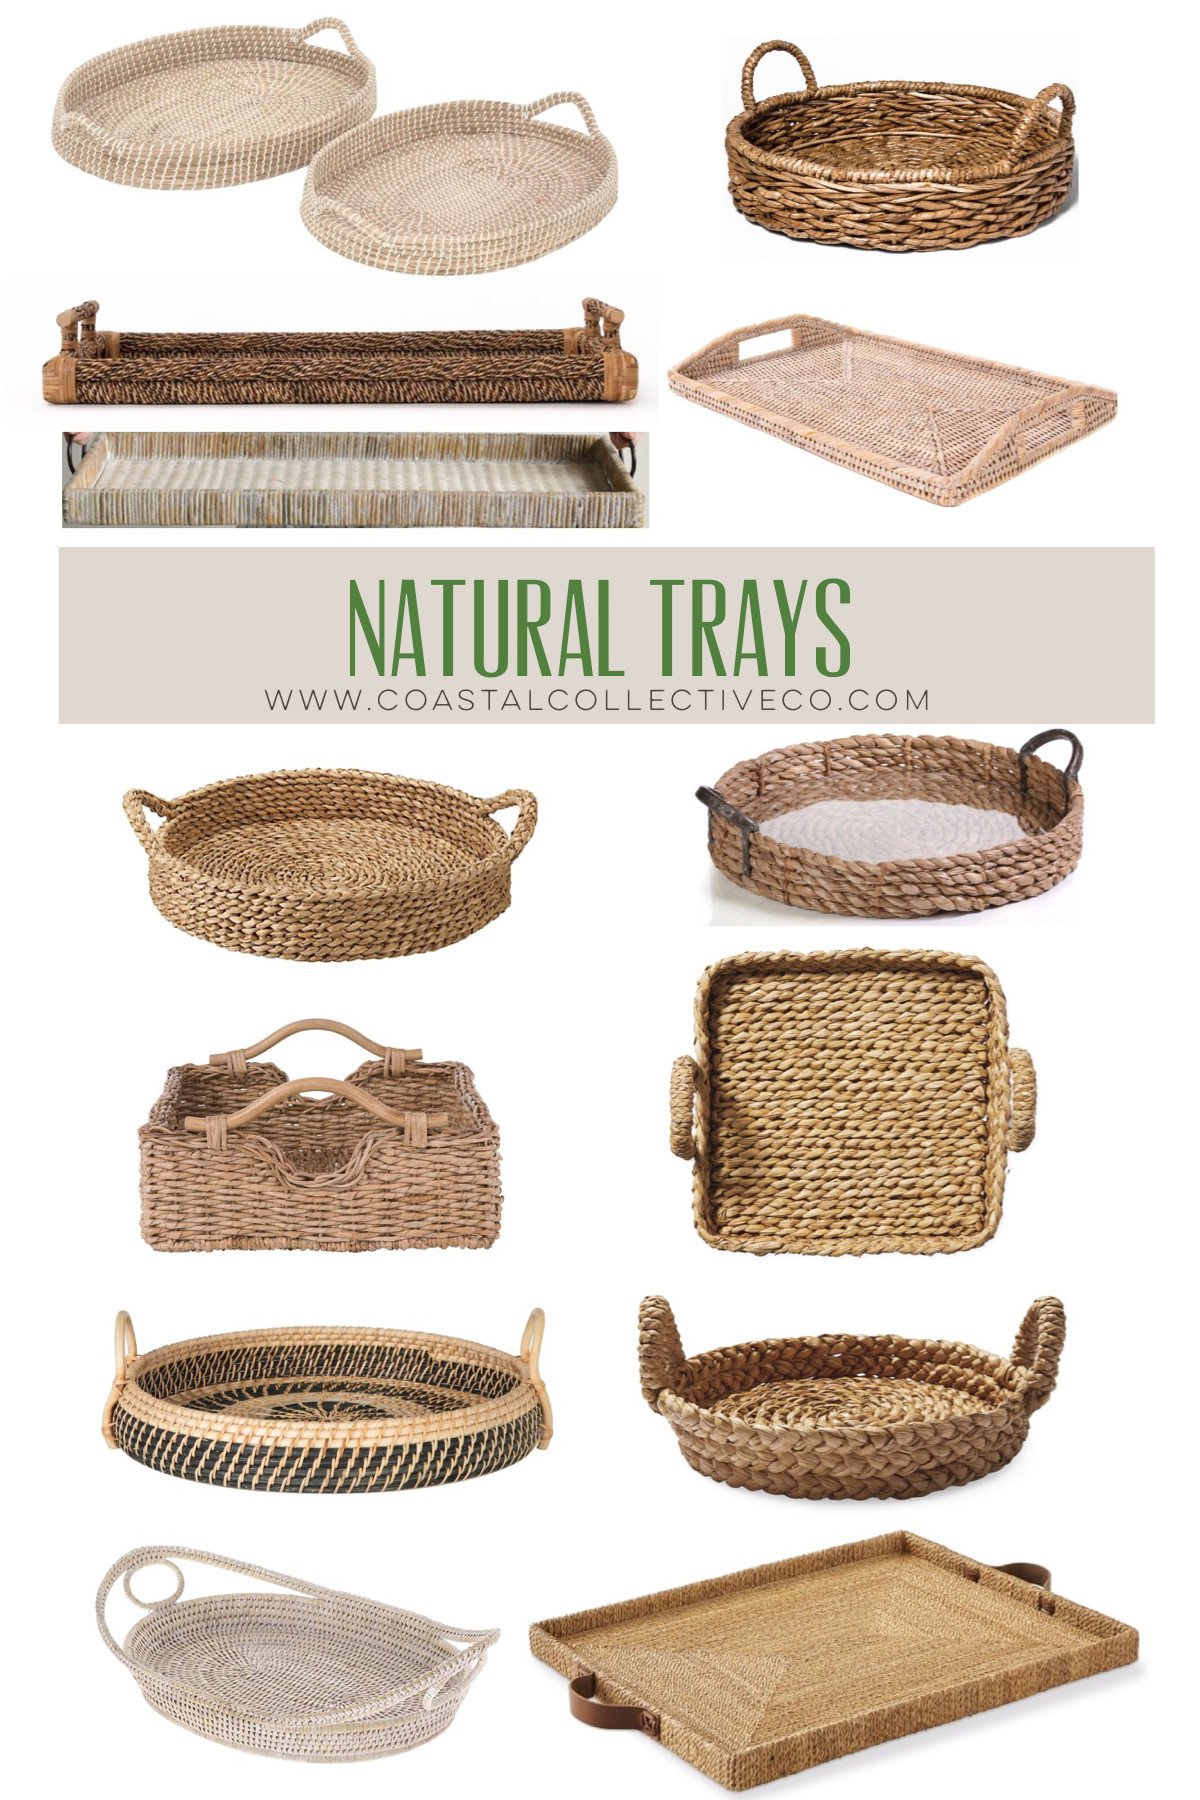 Seagrass and Wicker Natural Trays